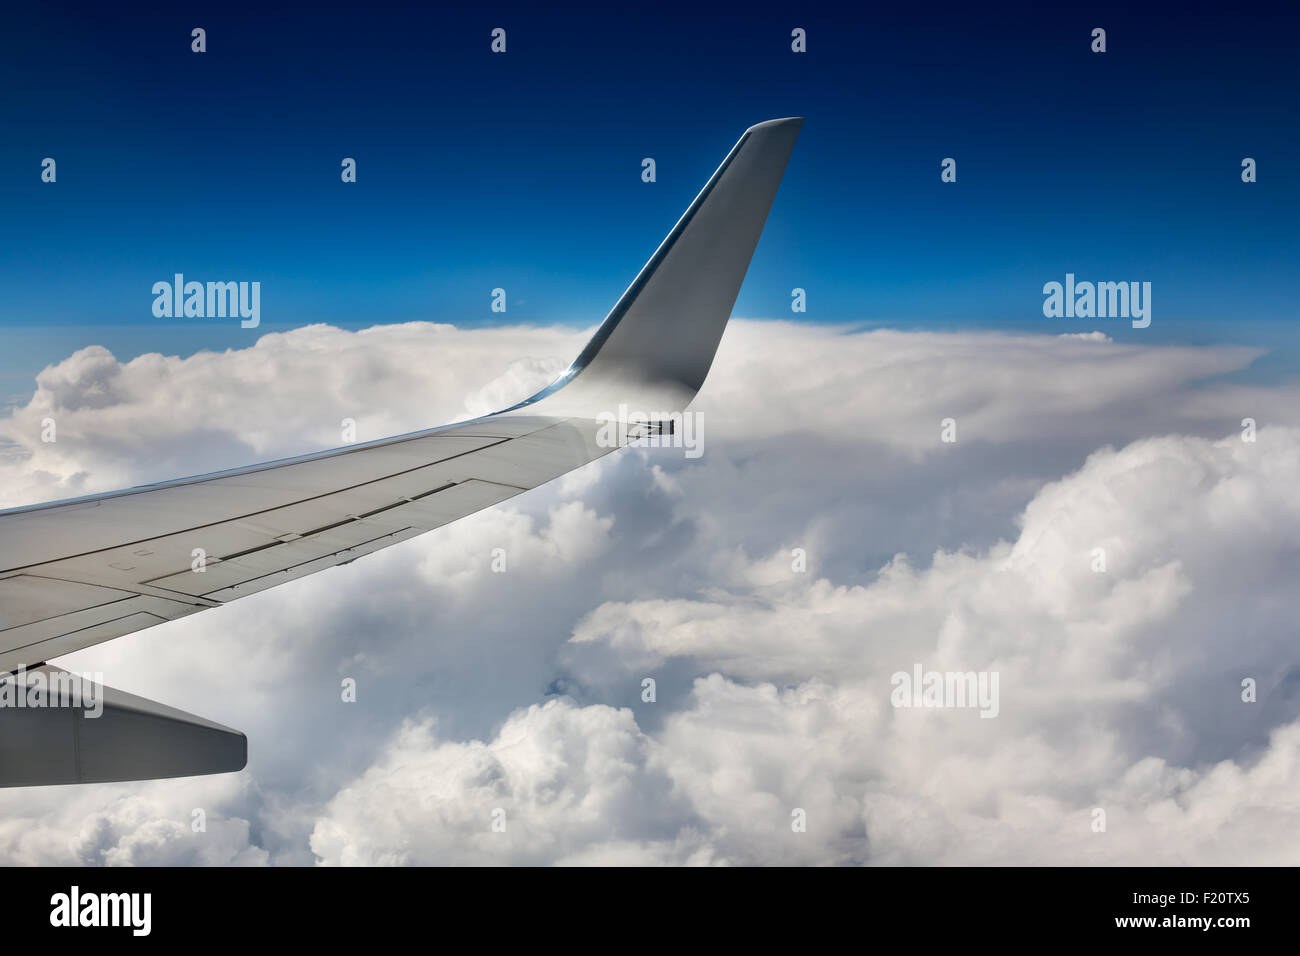 Part of airplane wing on sky and clouds background - Stock Image